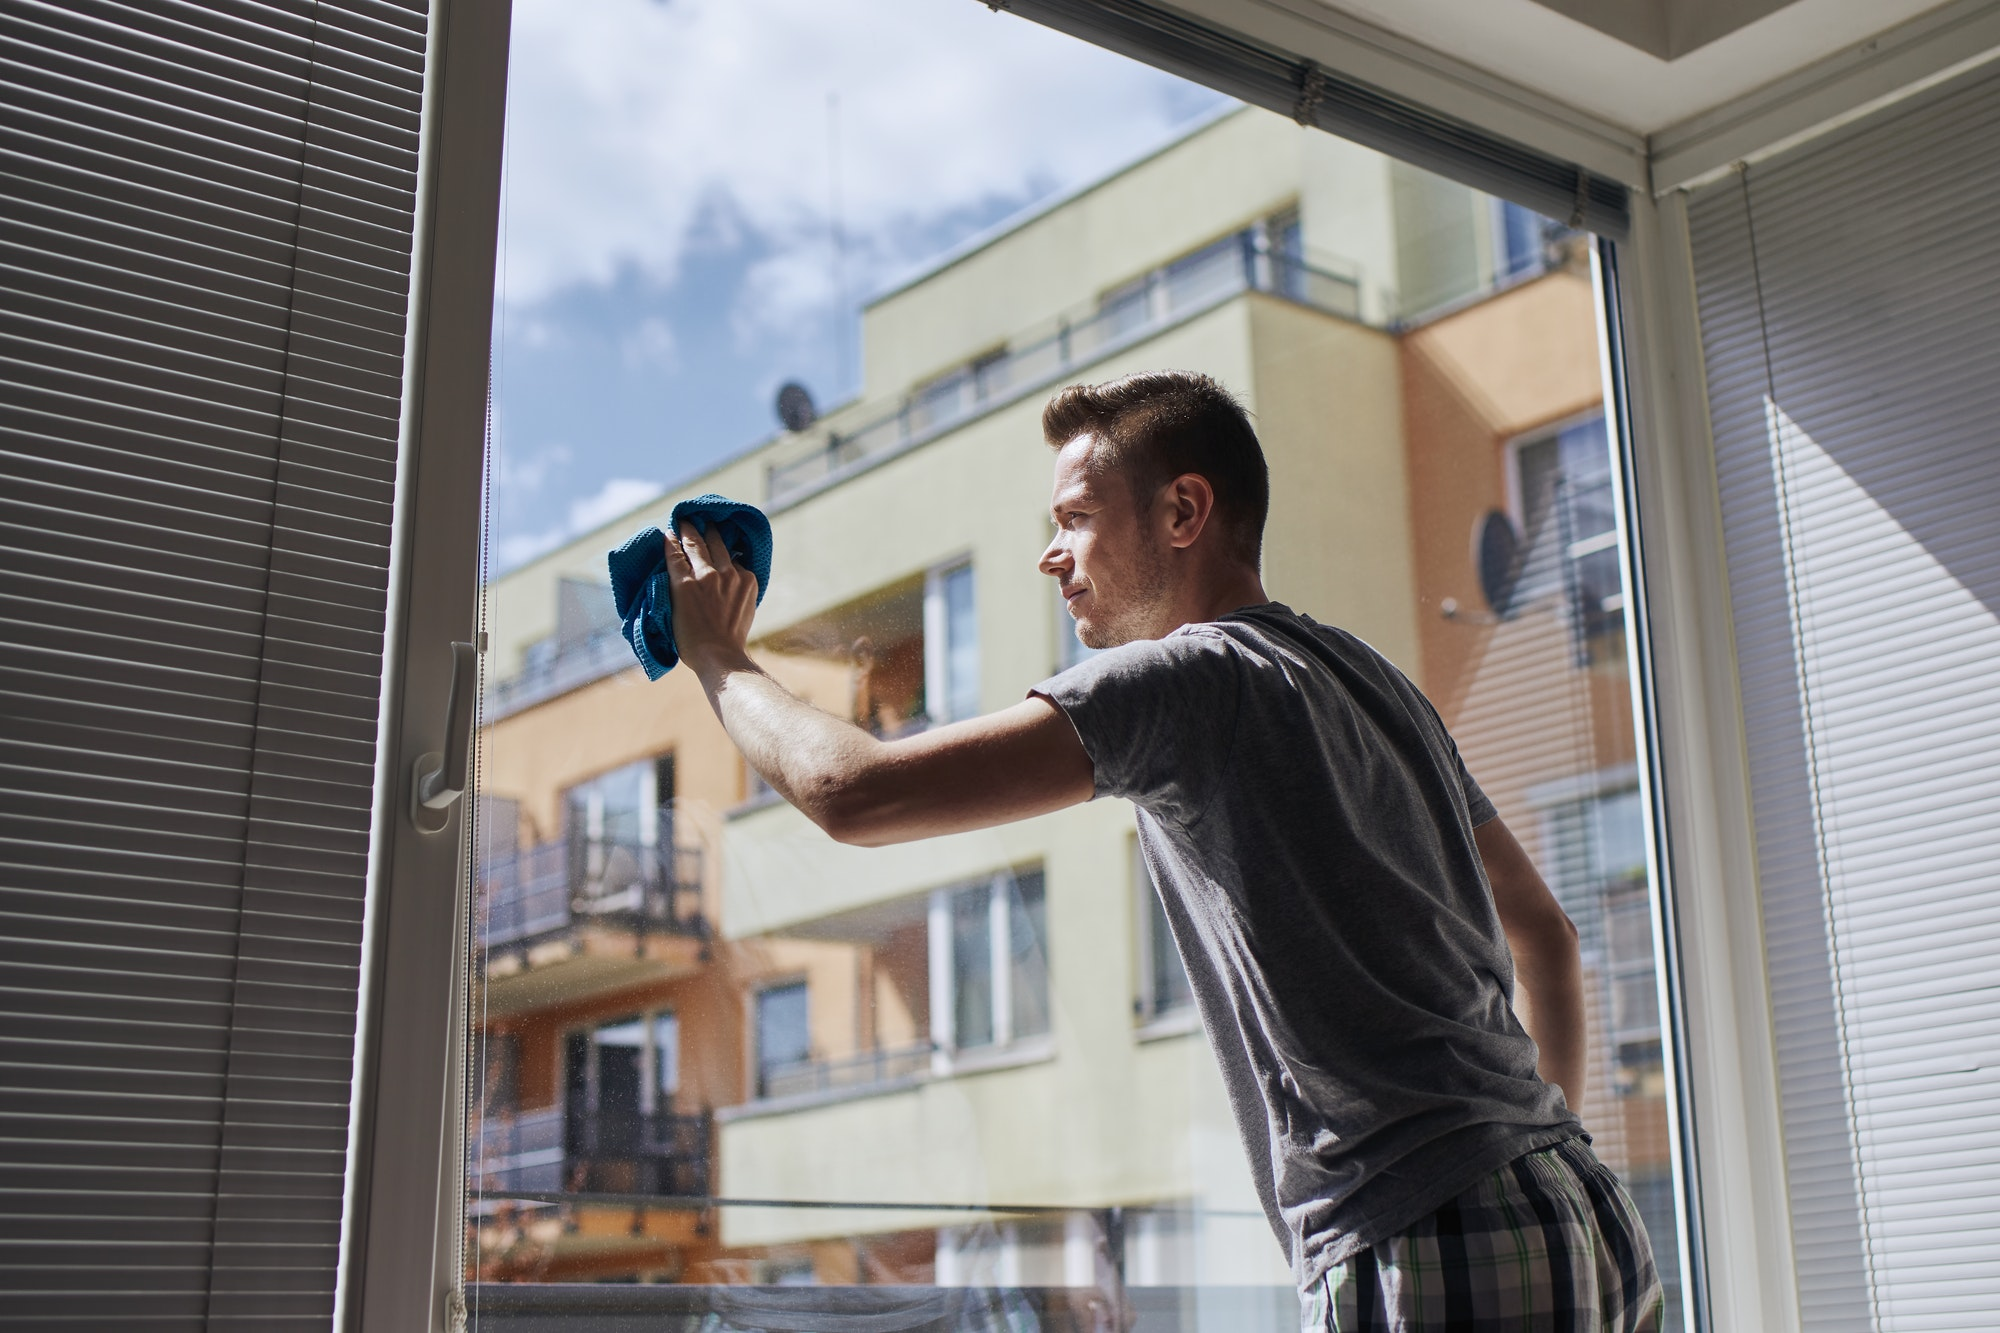 Man cleaning window at home